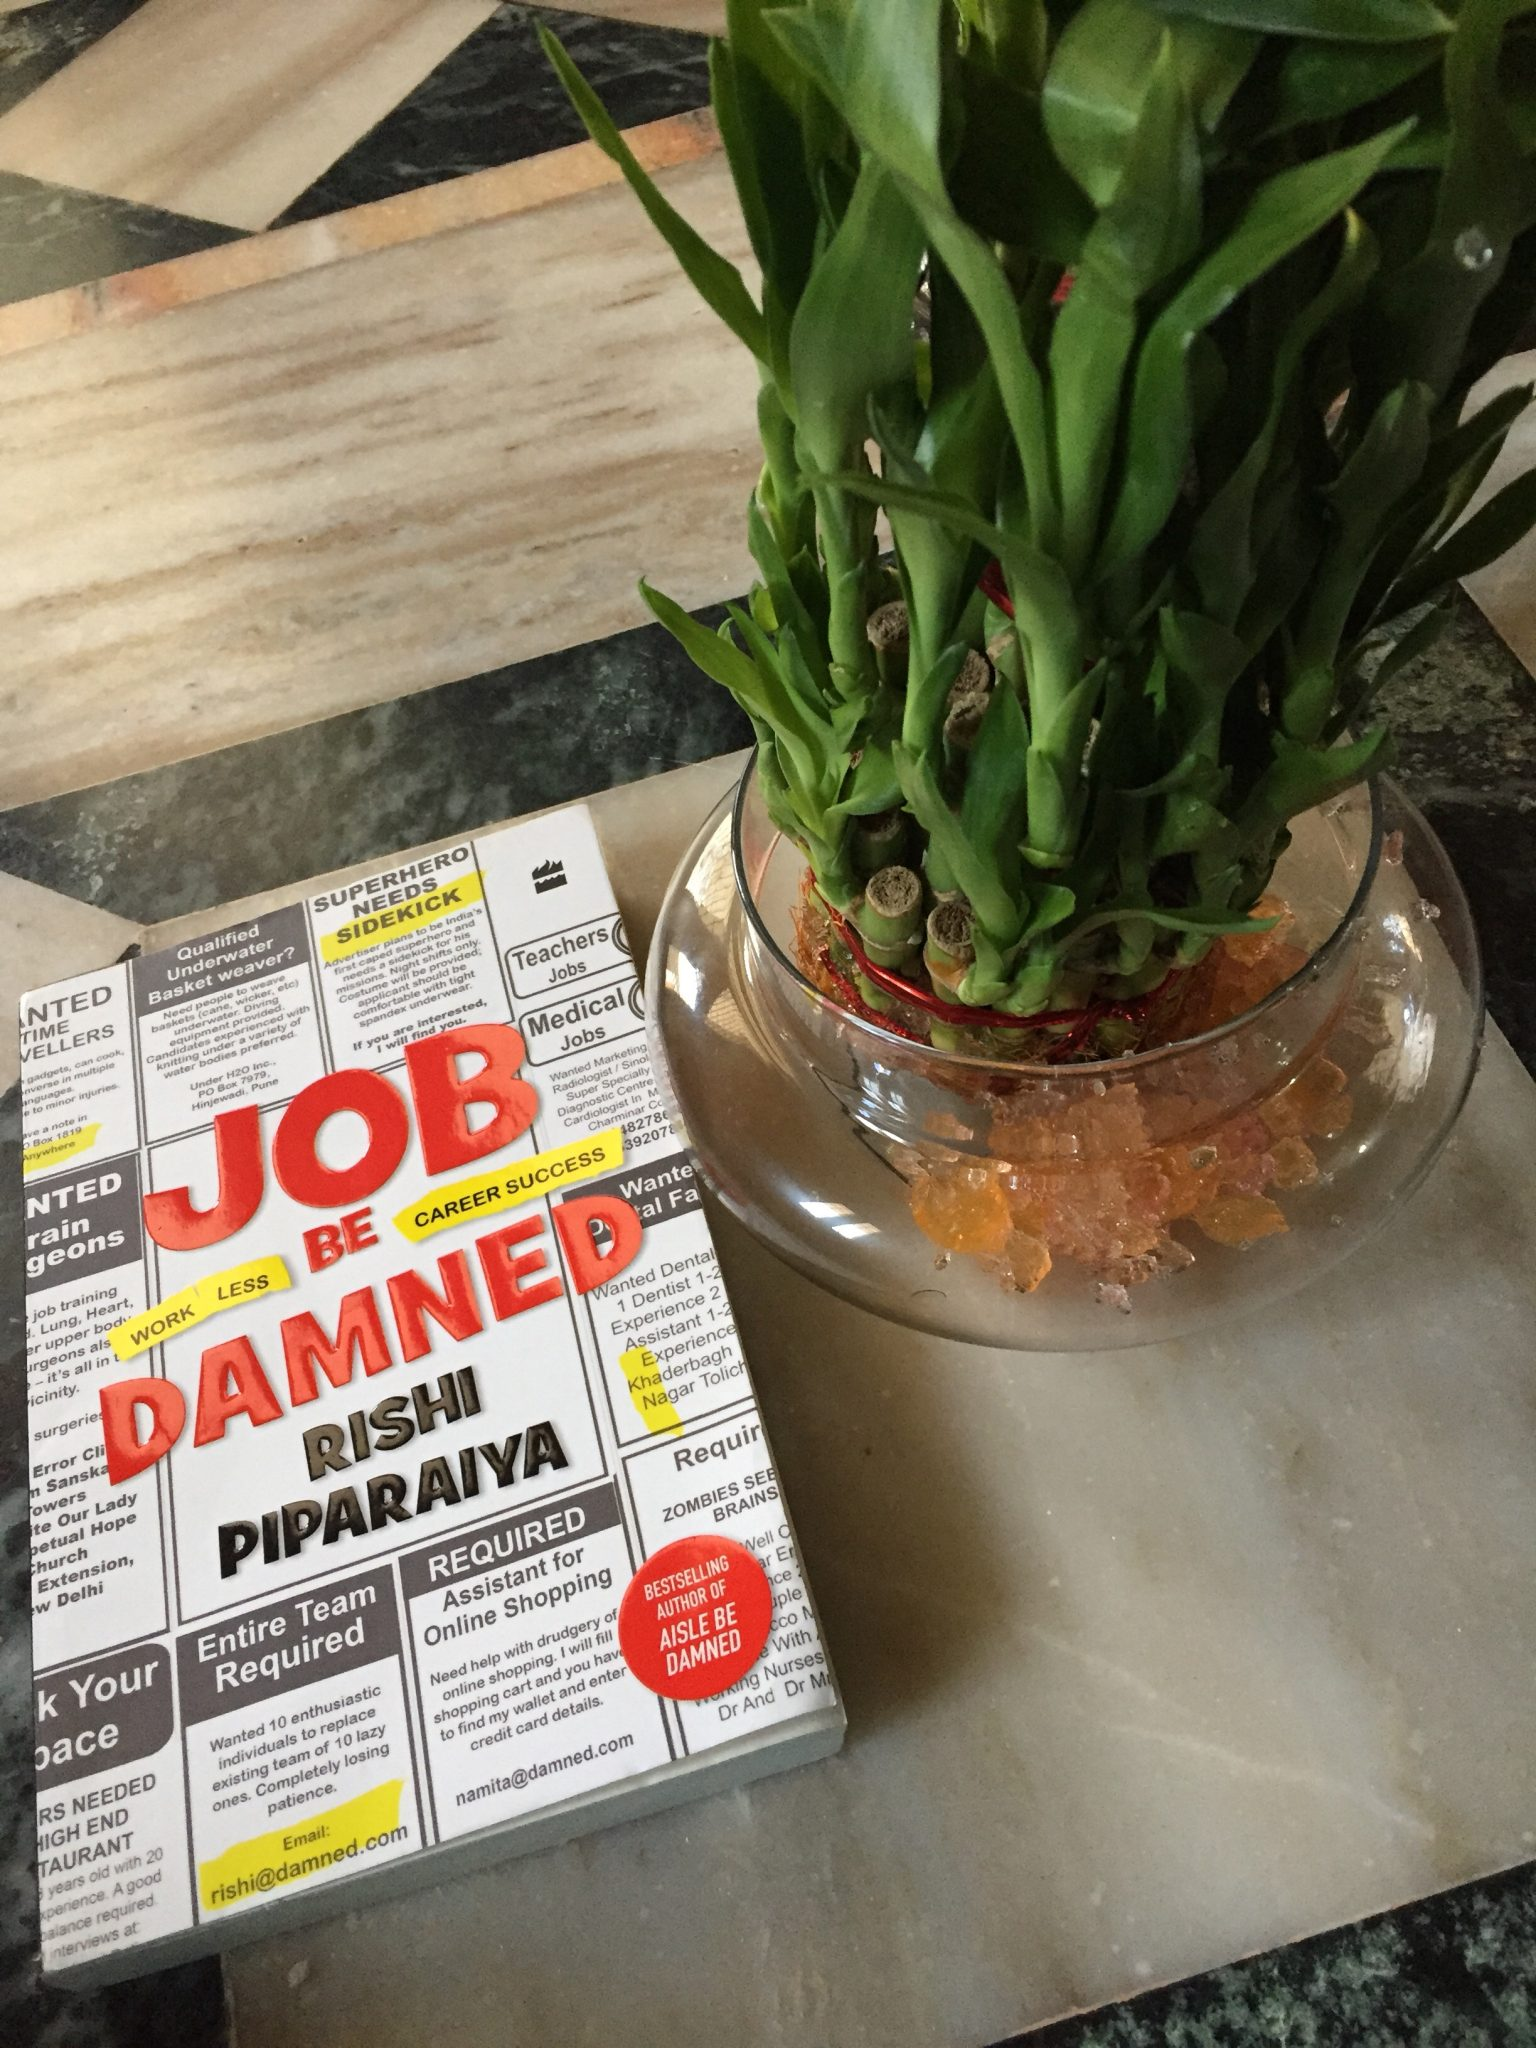 Job Be Damned by Rishi Piparaiya